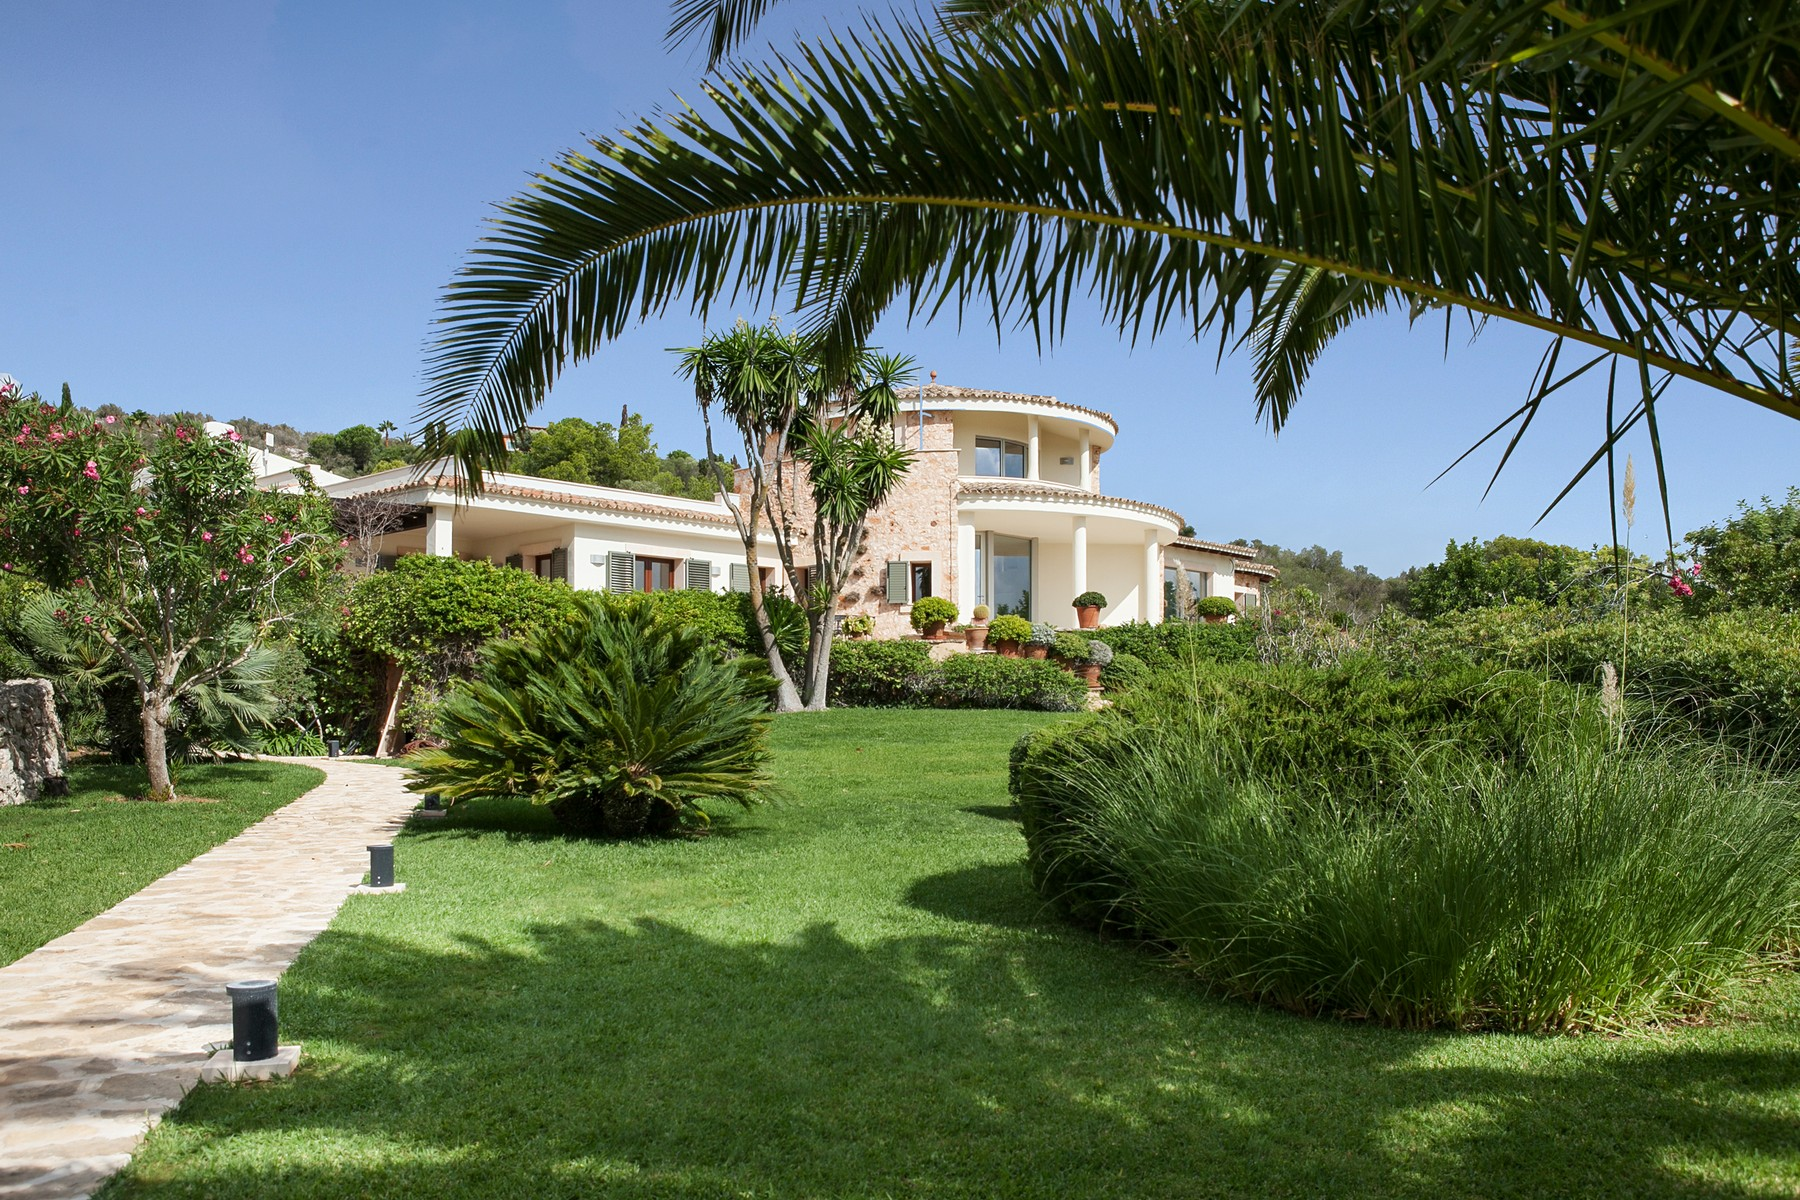 Single Family Home for Sale at Country Estate with sea views near Porto Colom es caritxo Porto Colom, Mallorca, 07669 Spain